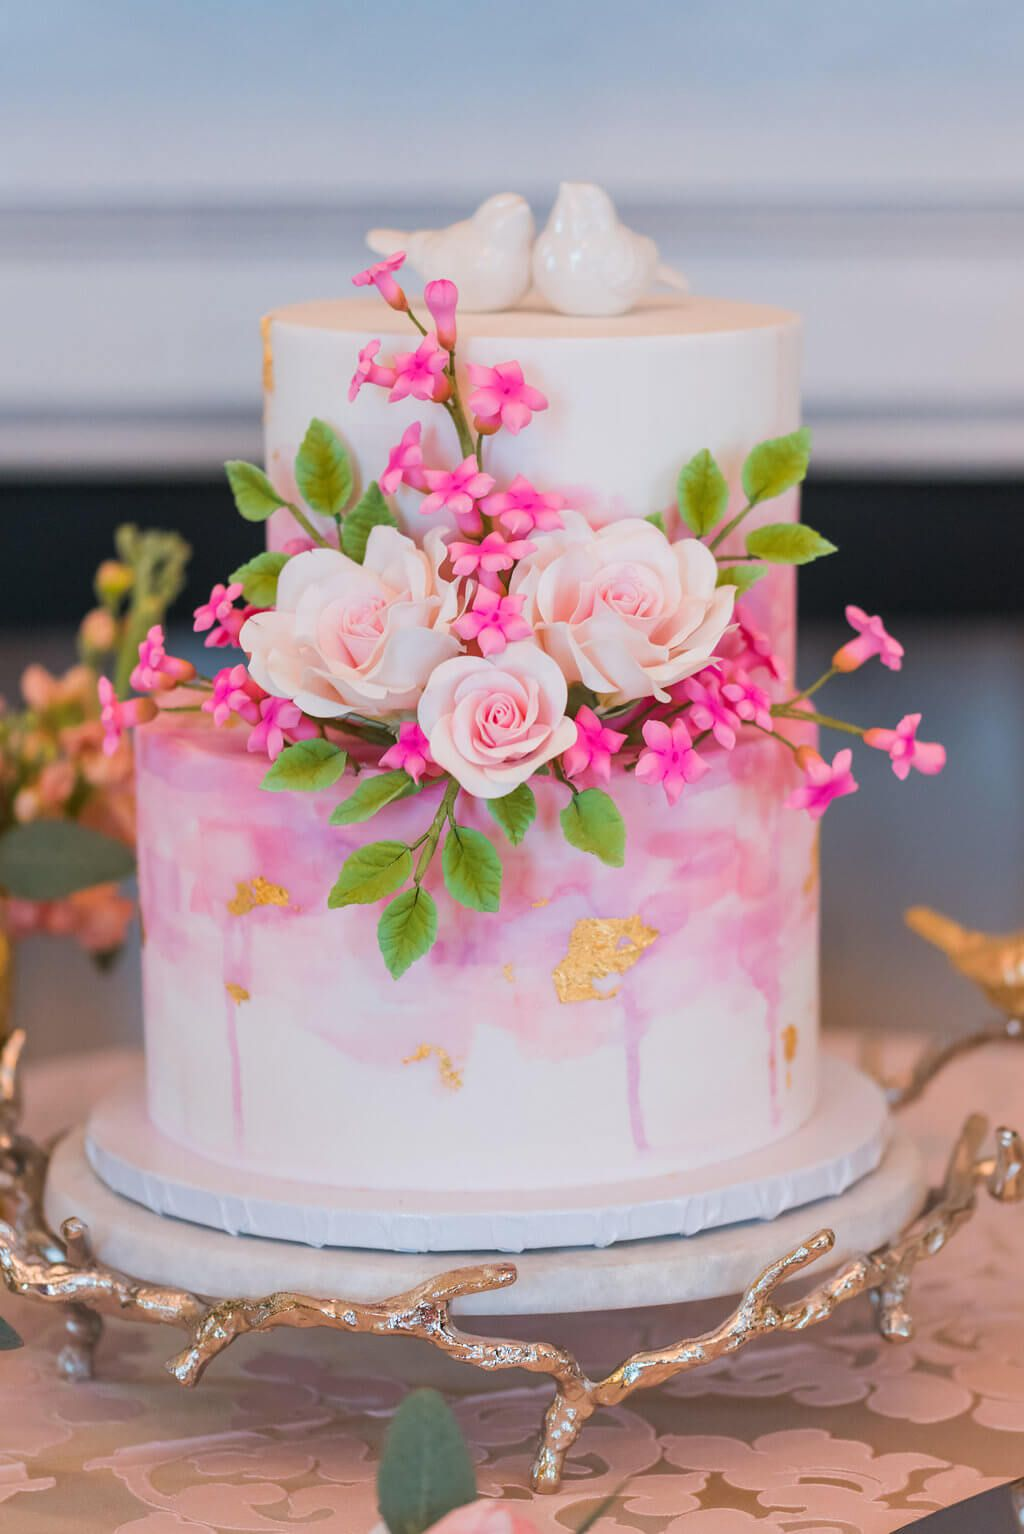 This Will Make You Consider A Perfectly Pink Wedding | Cakes ...